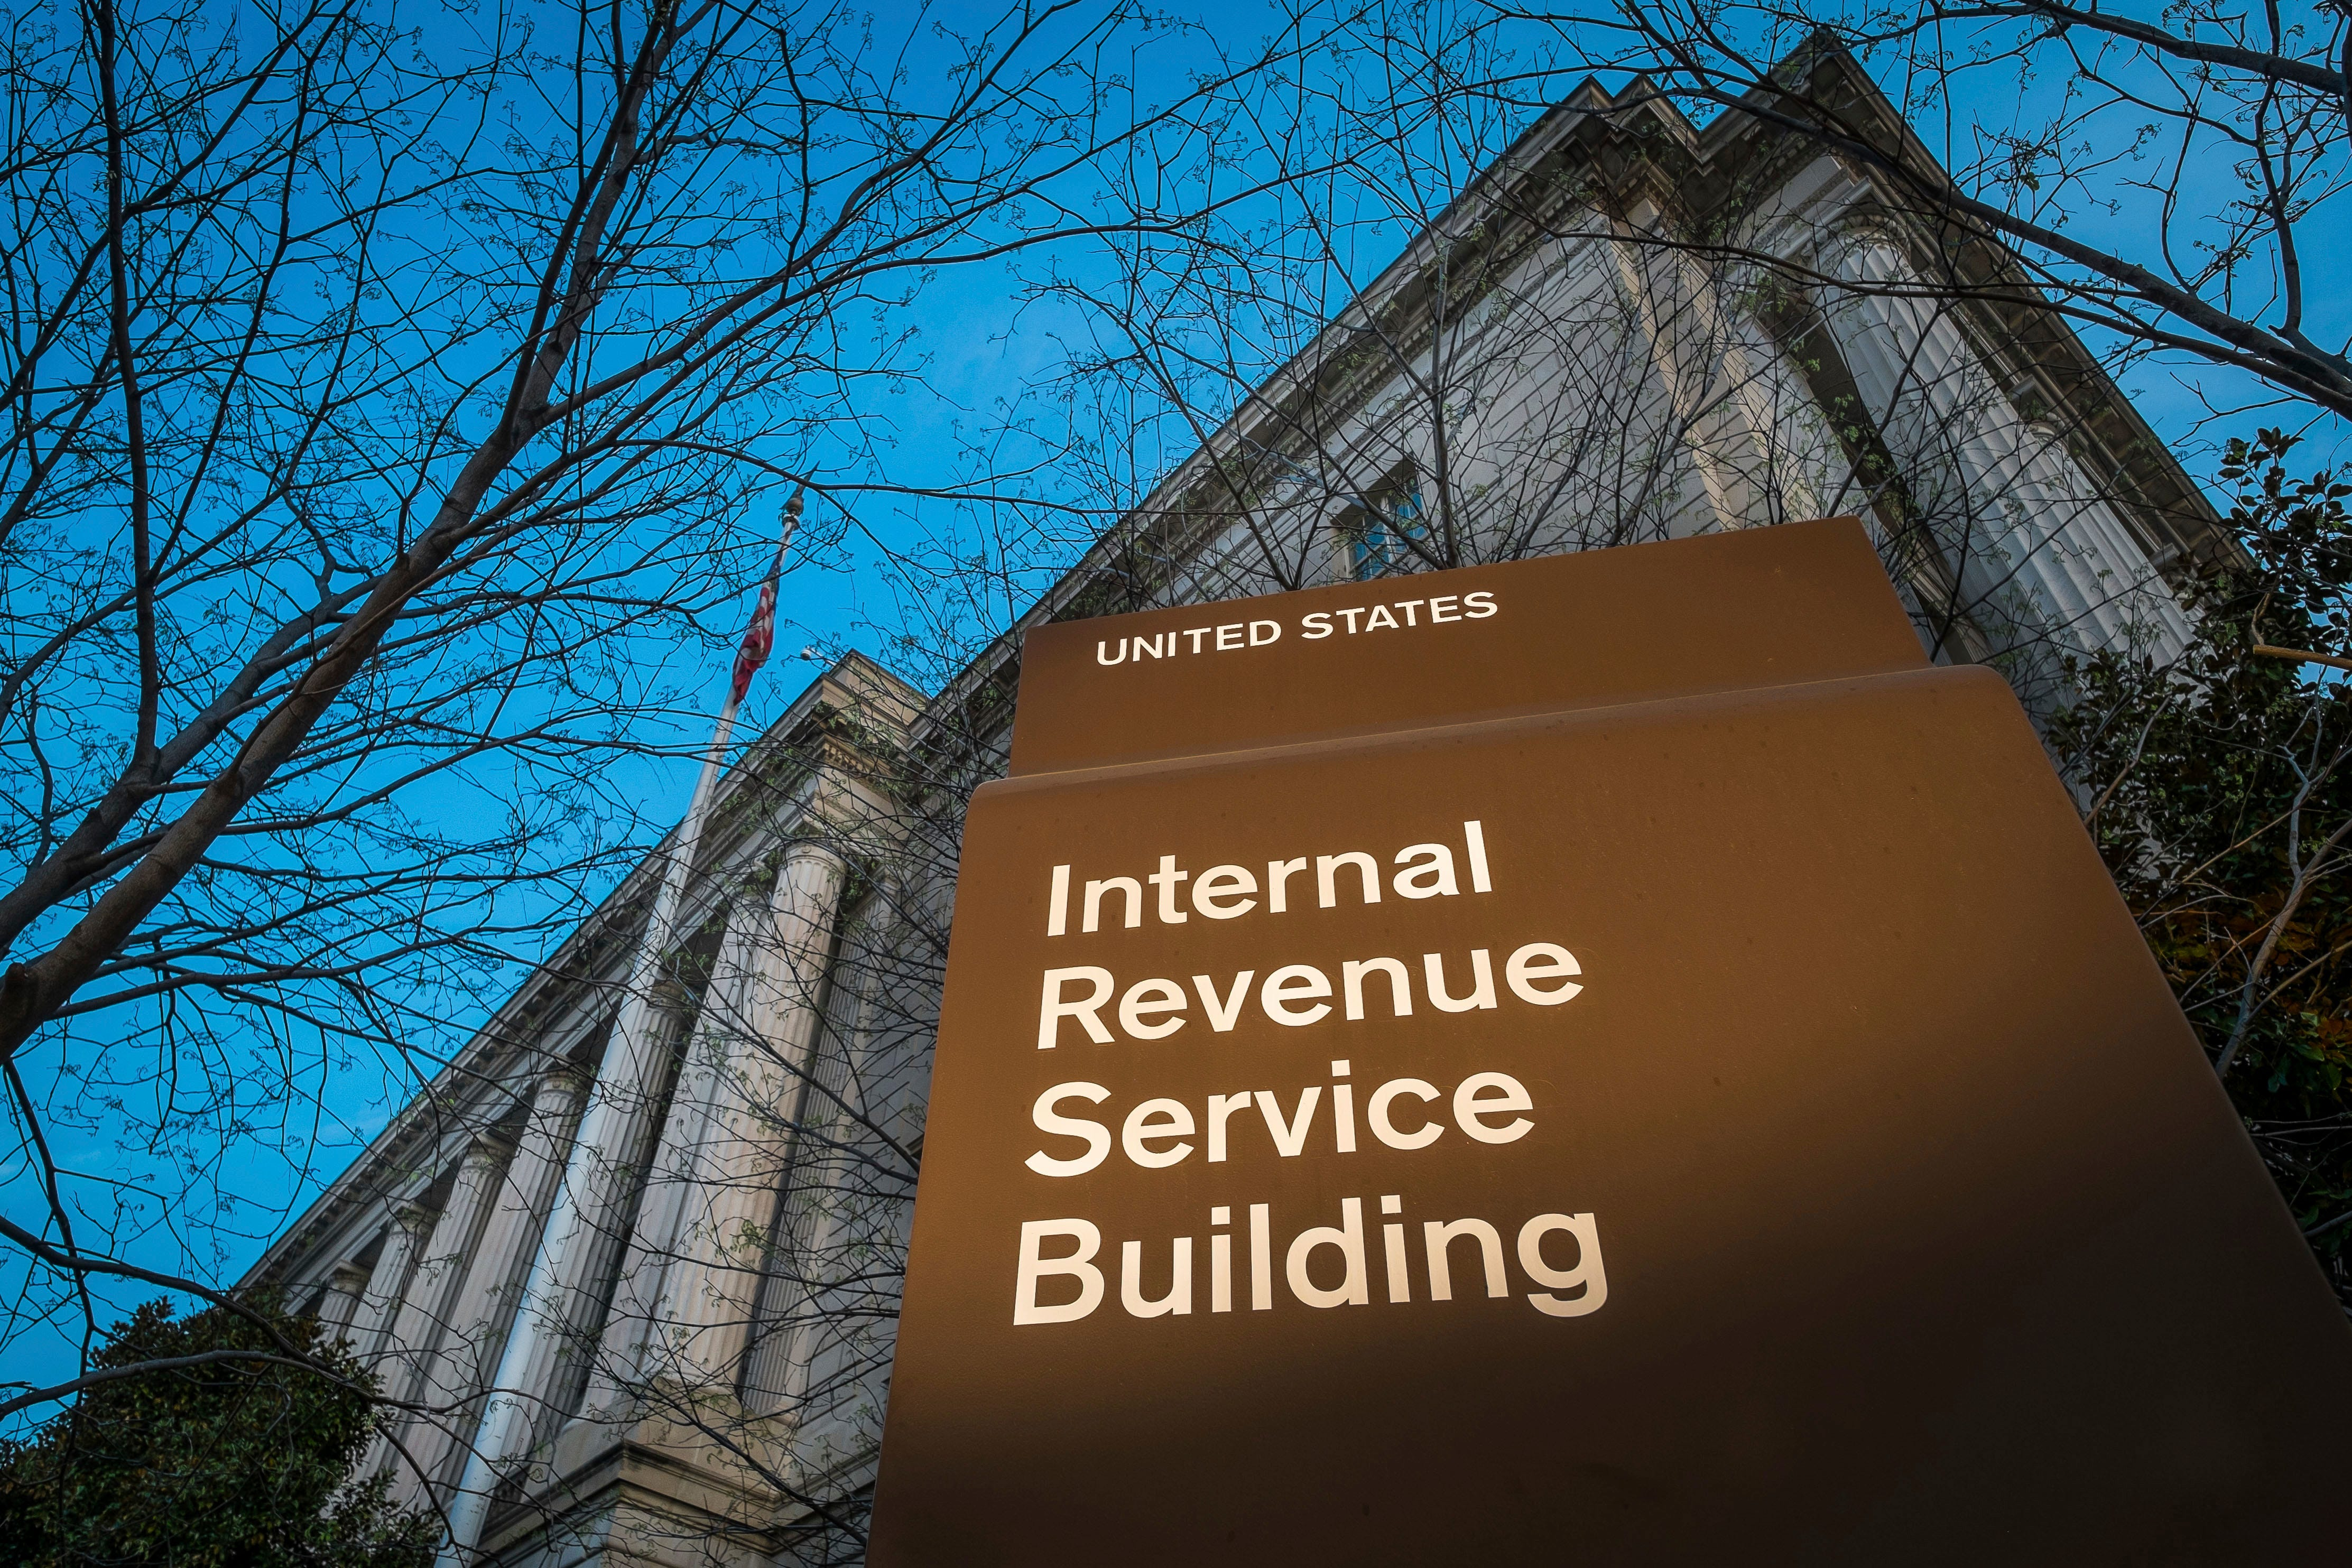 IRS, Agricultural Department to bring back thousands of furloughed workers